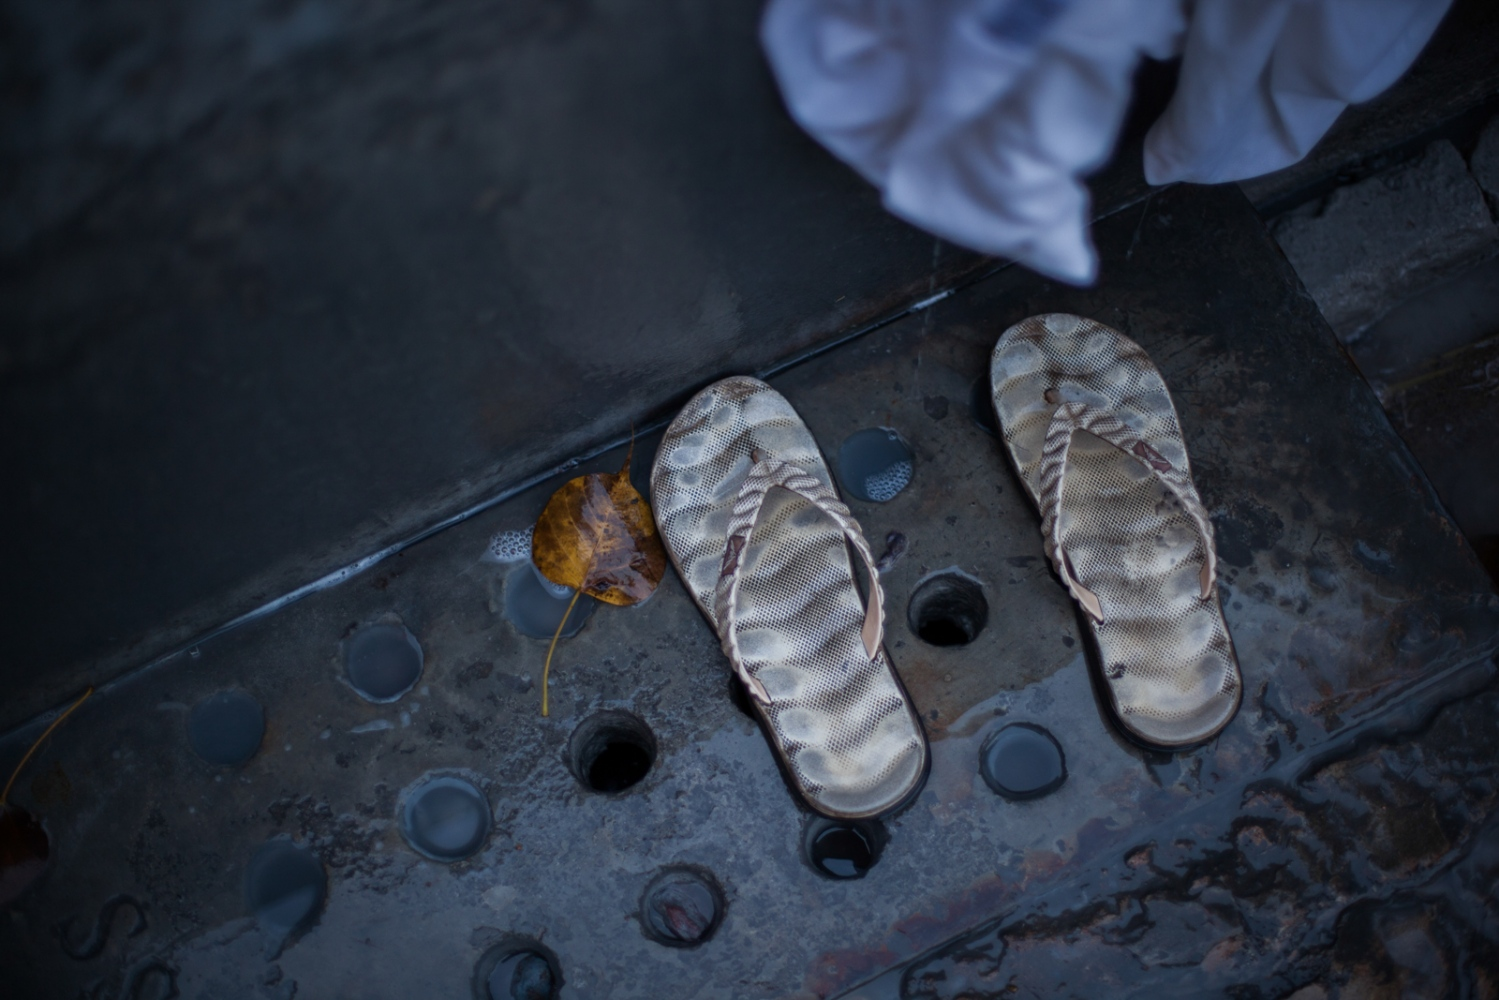 "Flip-flops belonging to Indian washerman Yogesh Kumar, 35, lie next to a stone bath as he washes clothes at a dhobi ghat outdoor laundry where he lives with his family in New Delhi on February 17, 2015. Yogesh has worked at the ghat for 15 years and says. ""It's hard. The water gets cold and the clothes are heavy, and we make little money."""